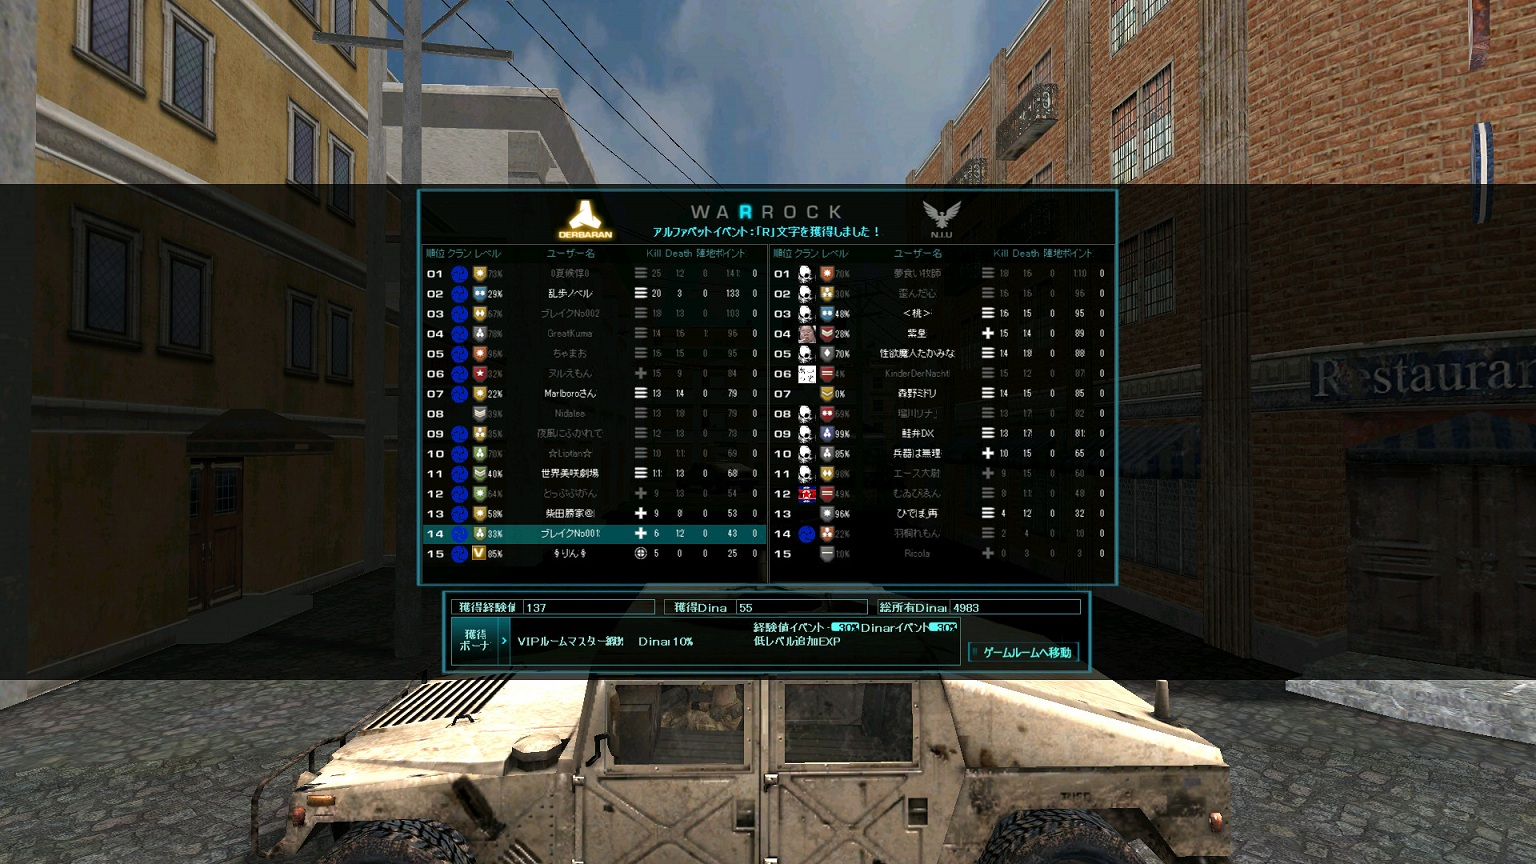 screenshot_217.jpg